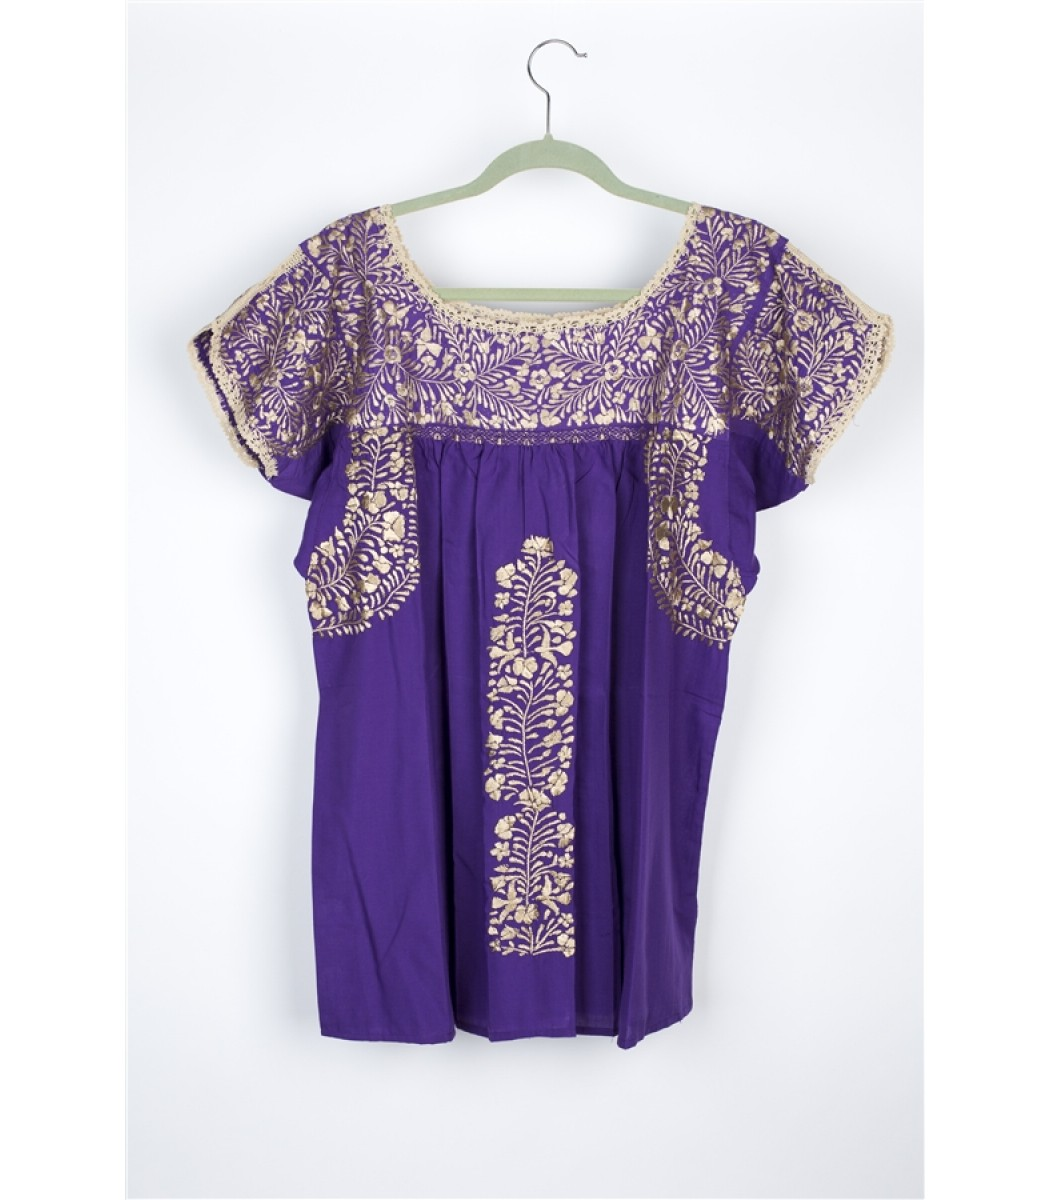 d31f4c3aa5bb1 Hand Embroidered Cotton Blouse in Purple by Artisans from San ...